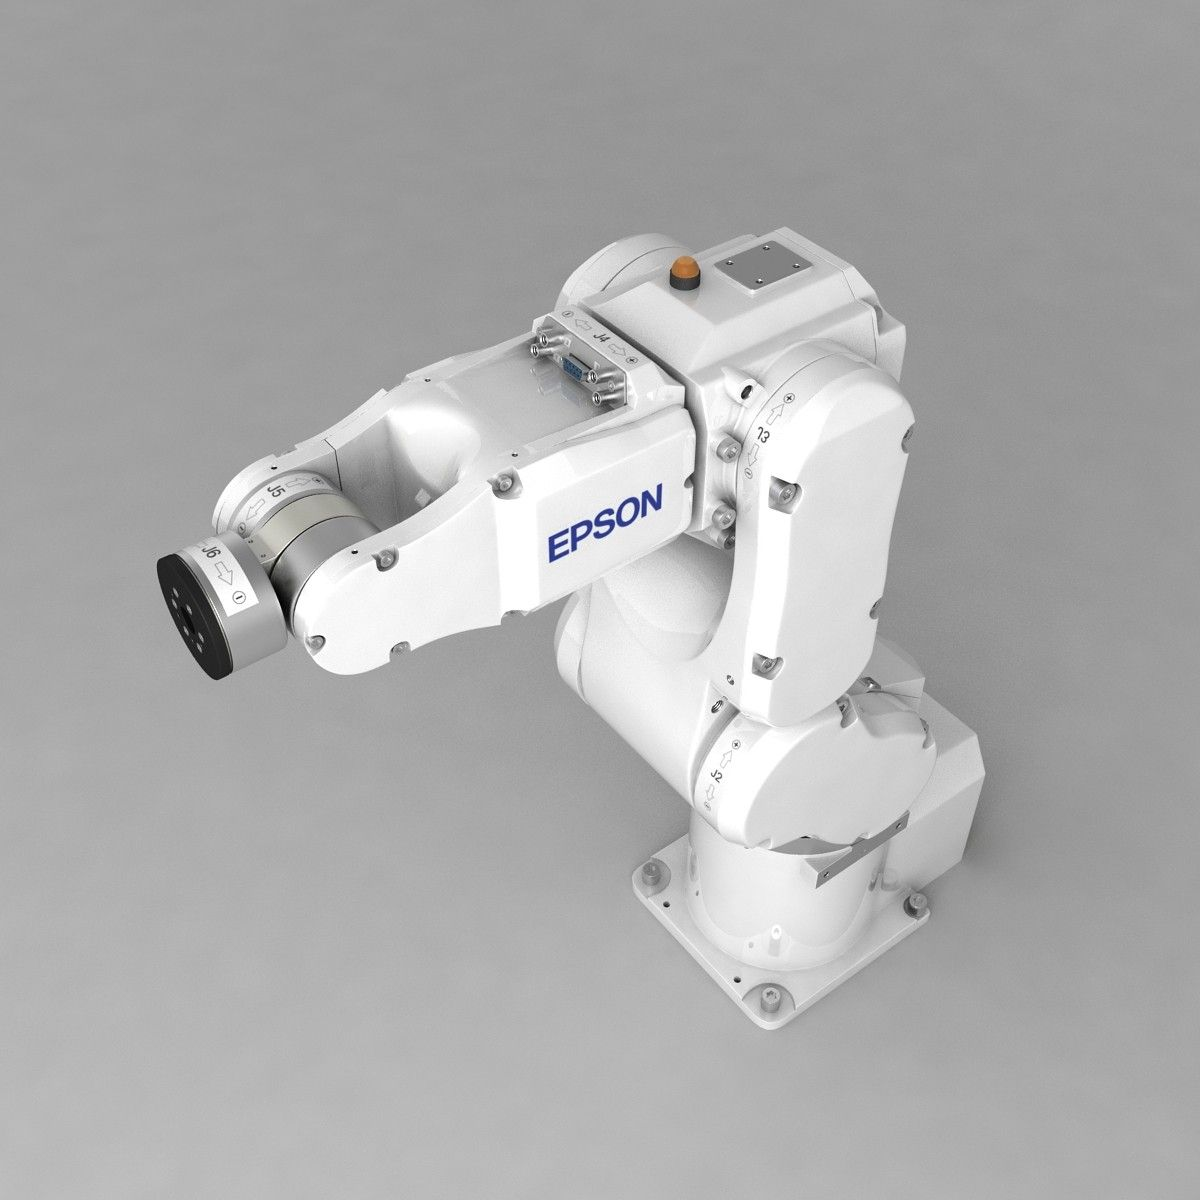 3d industrial robotic arm epson model